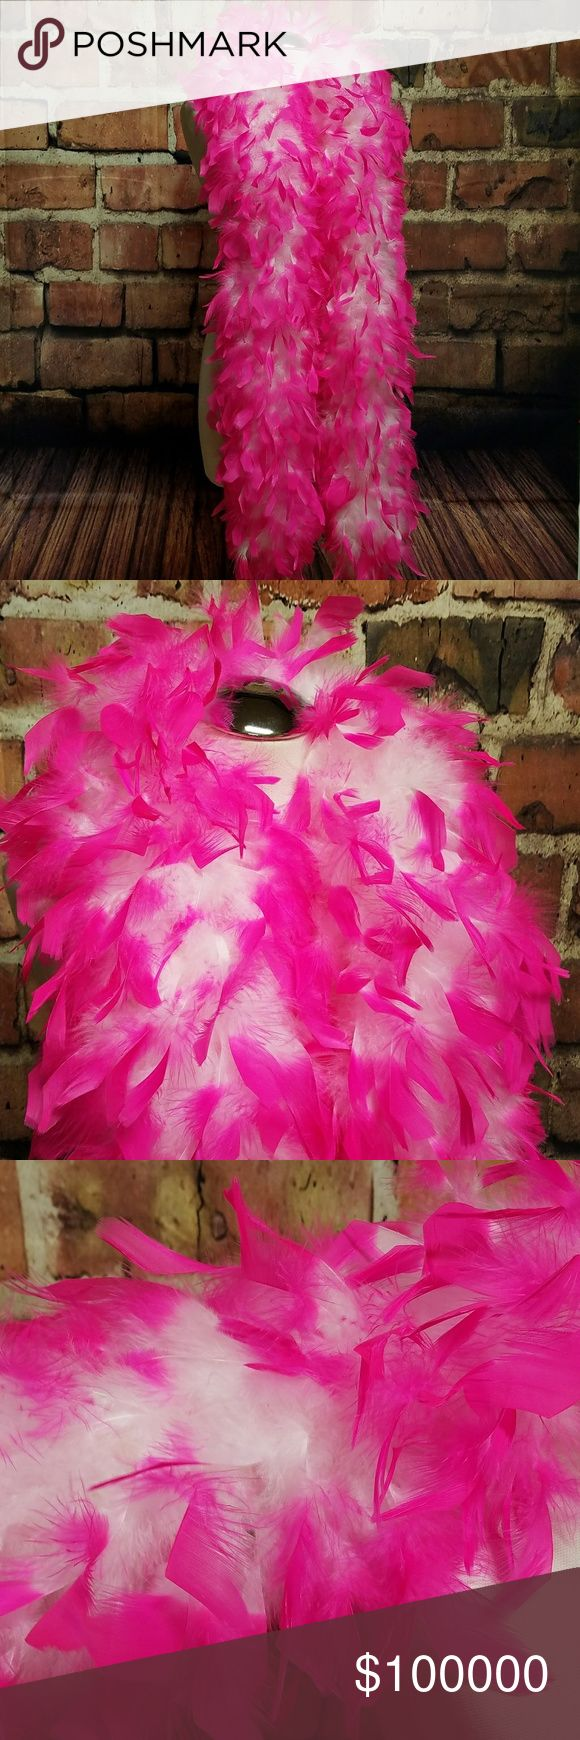 🆕 Hot pink and white feather boa Hot pink tips, white at center Accessories